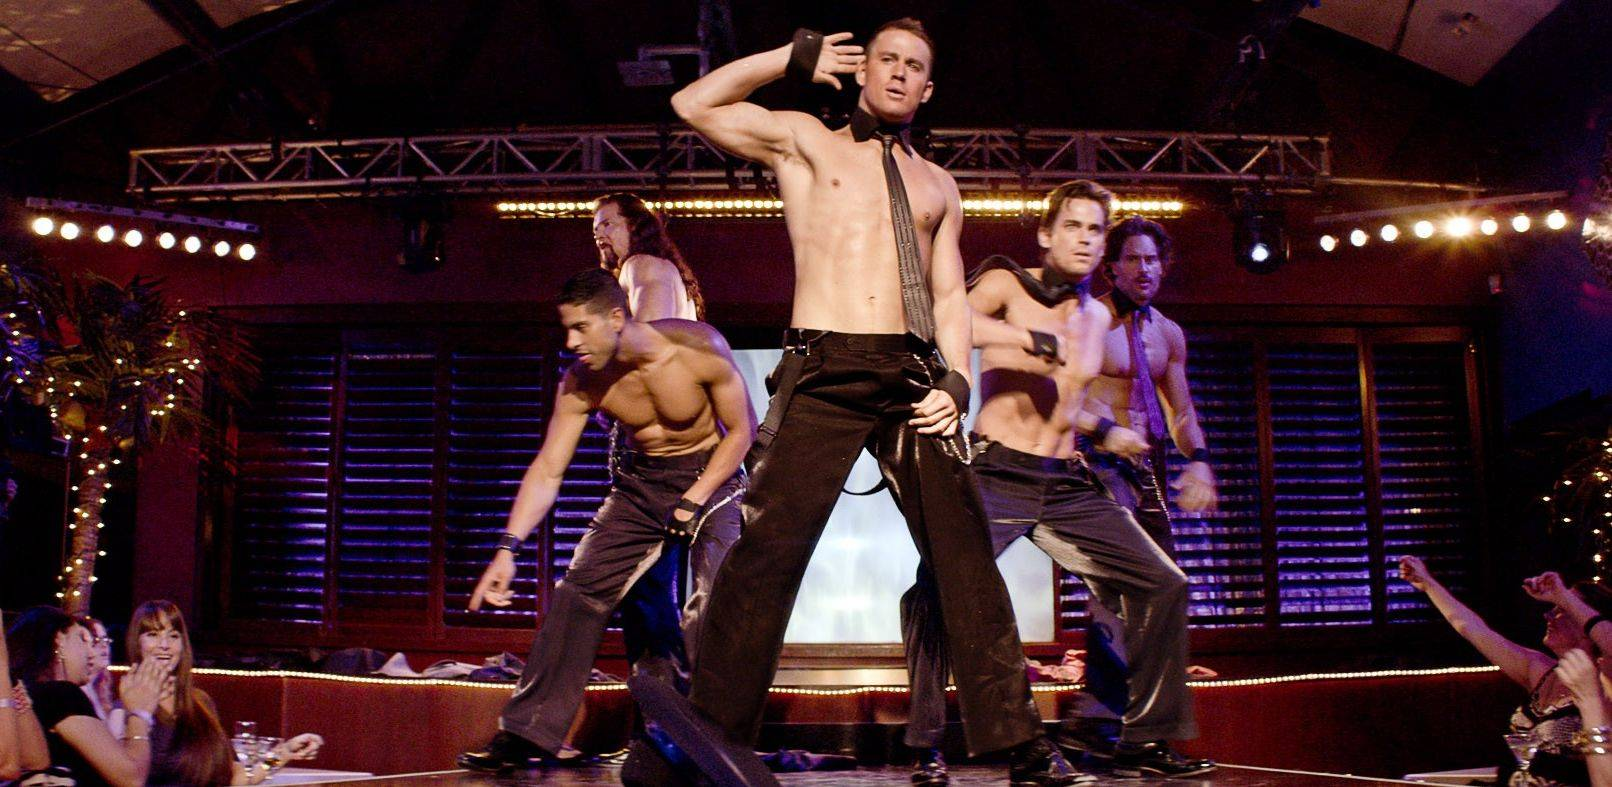 "Professional stripper Mike (Channing Tatum), center, does his stuff for the Xquisite Club in Tampa in Steven Soderbergh's ""Magic Mike,"" based on Tatum's experience in clubs."